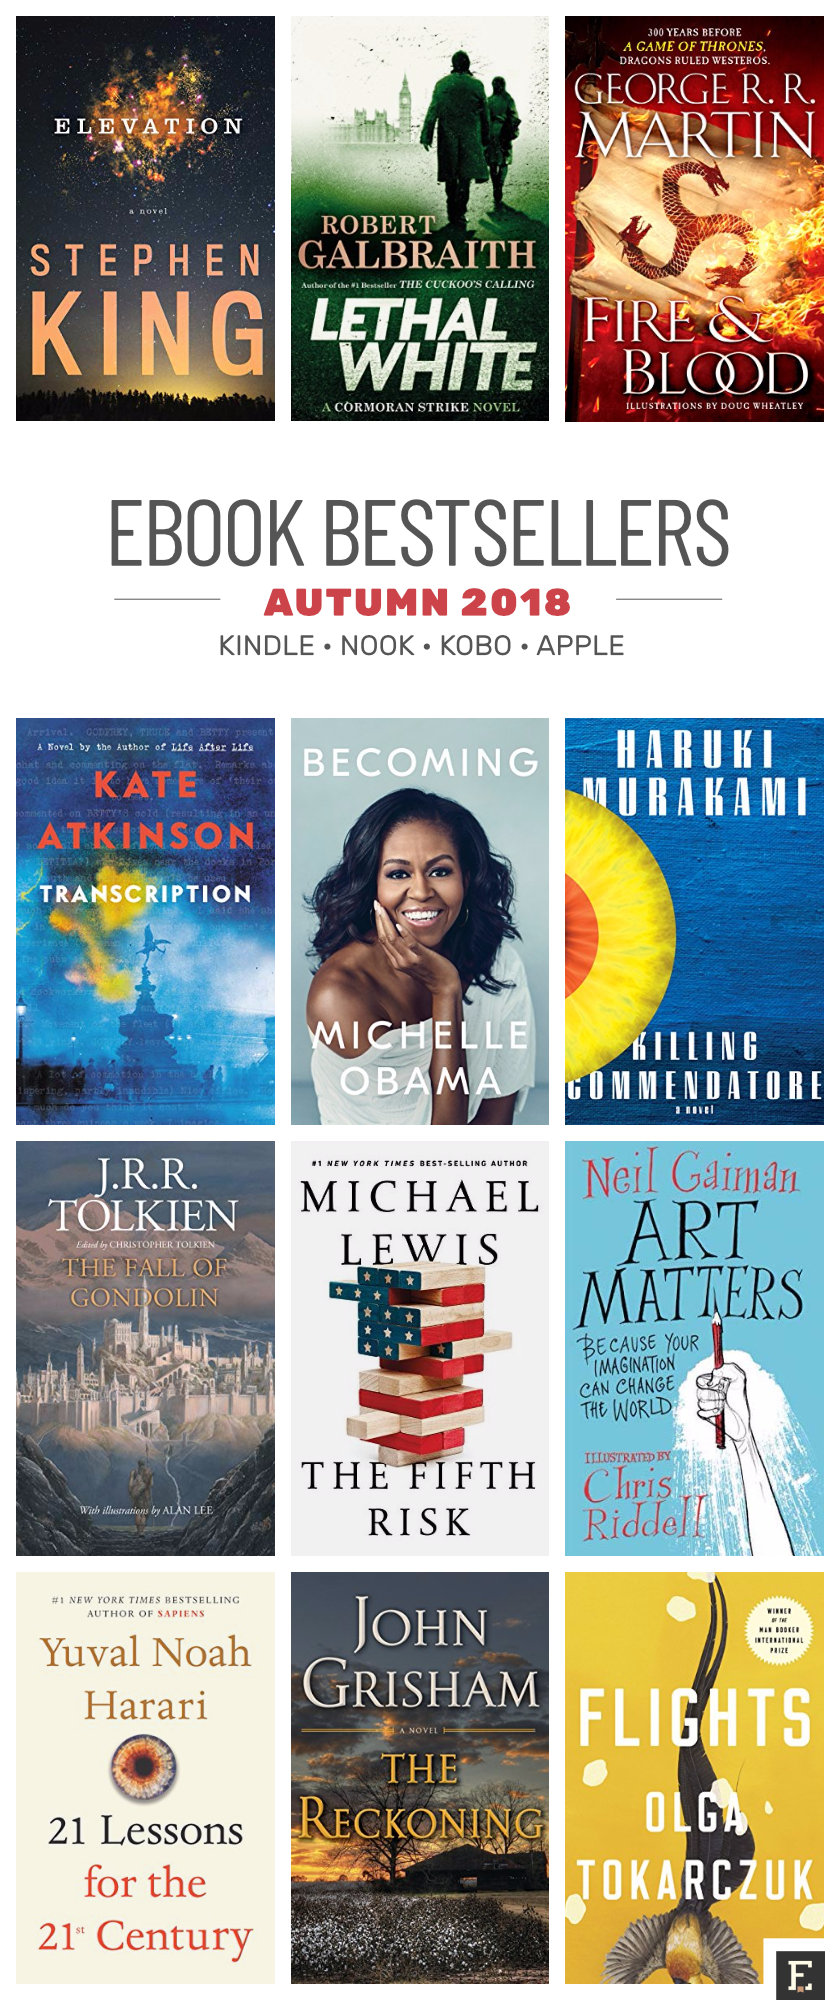 Best ebooks of autumn 2018 #infographic